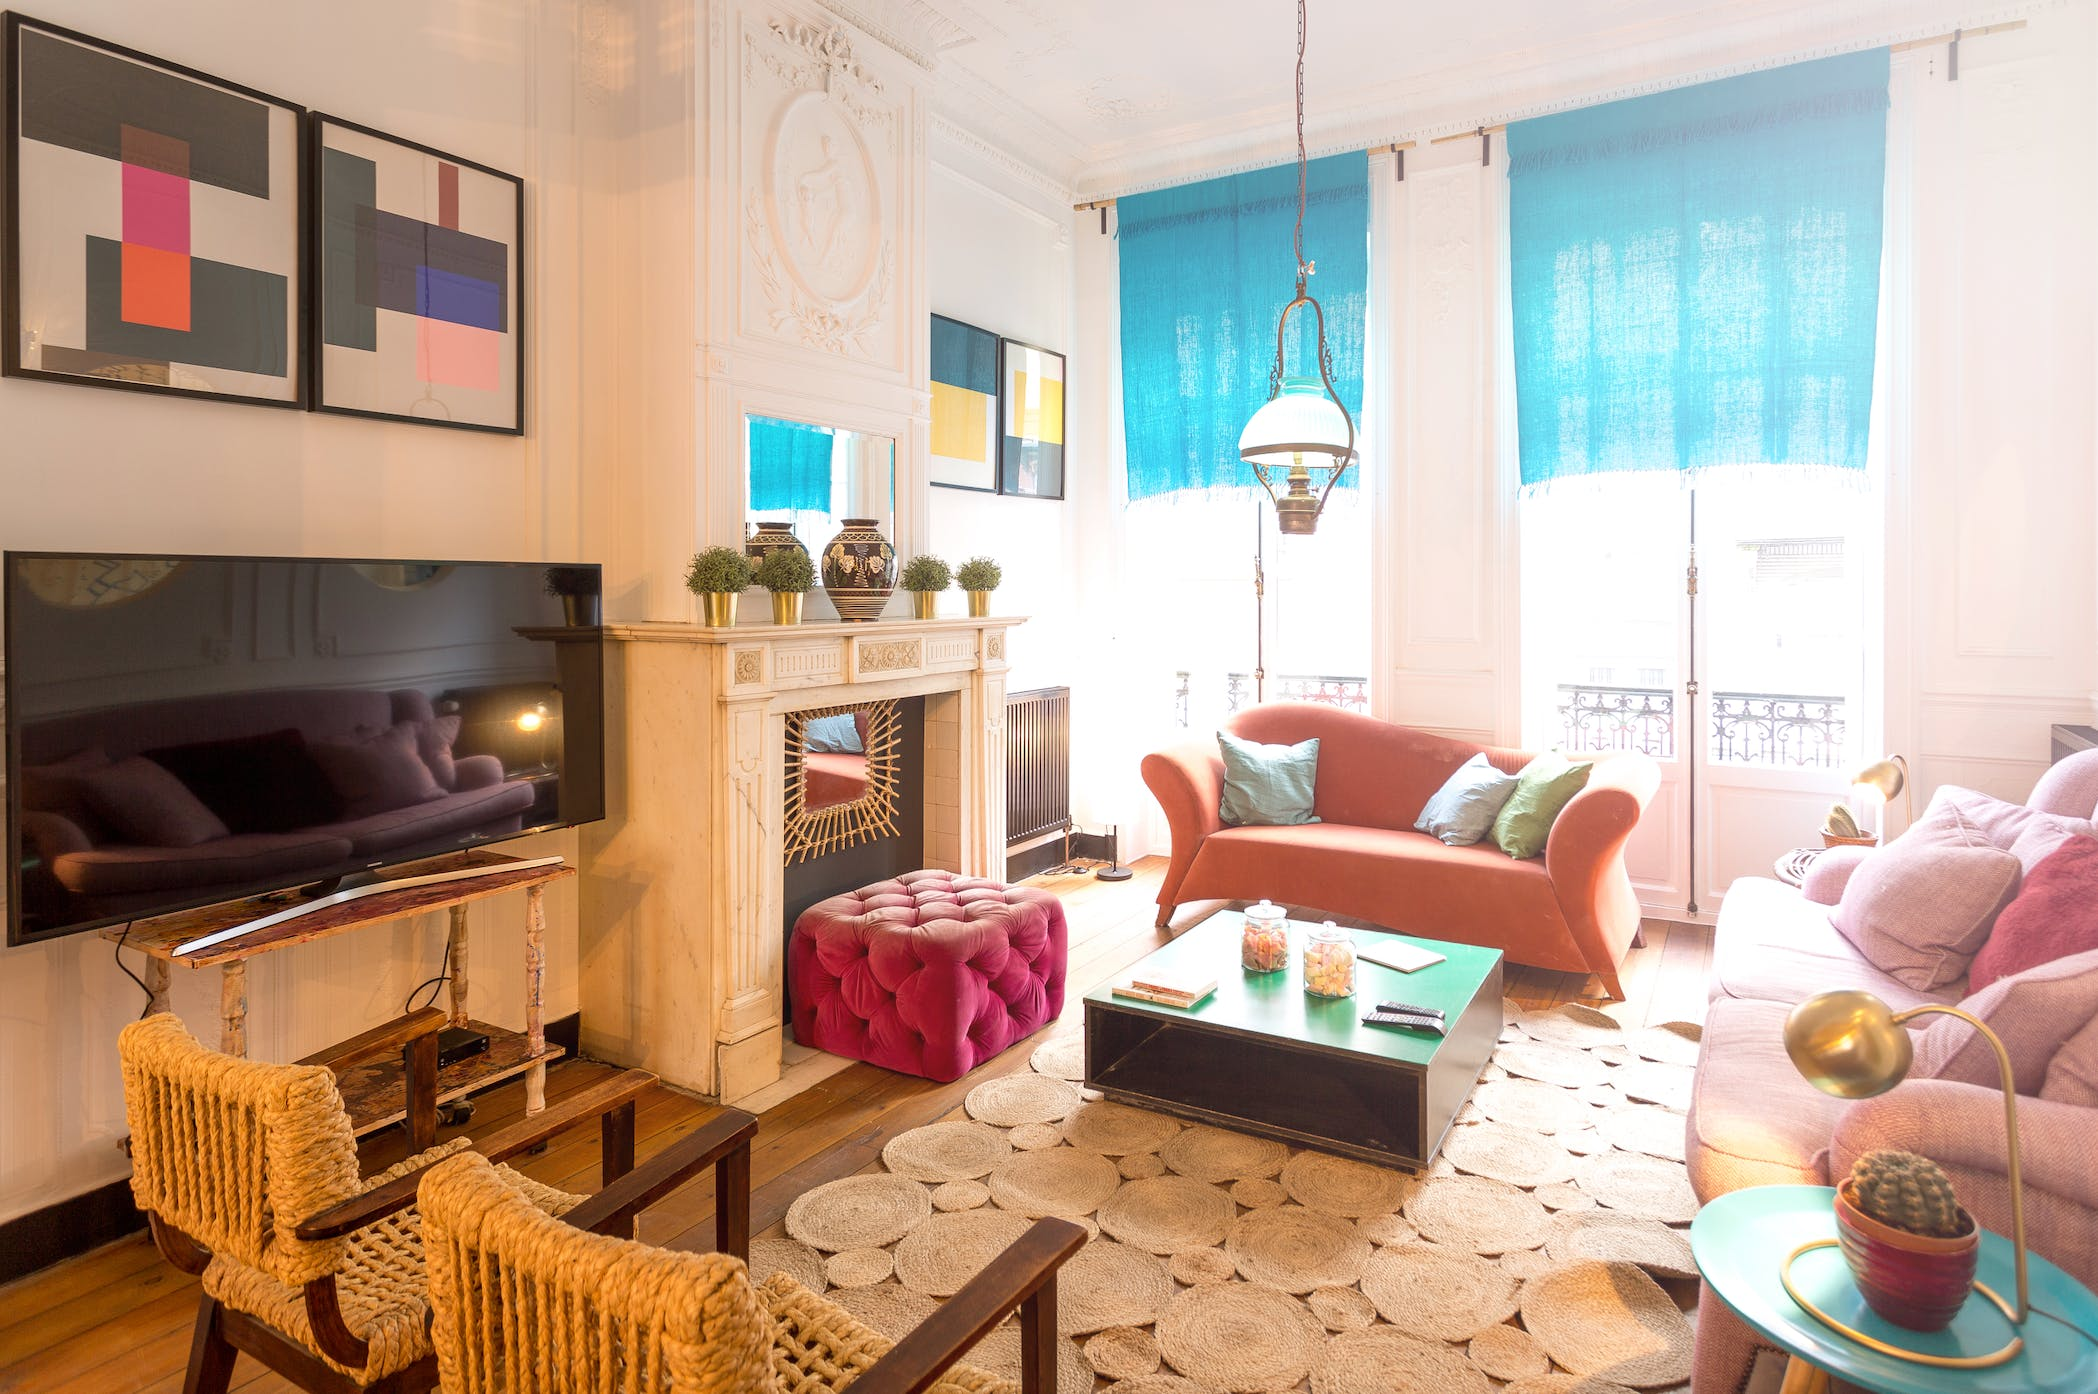 Central Cosy and Spacious House - Incl. Coworking